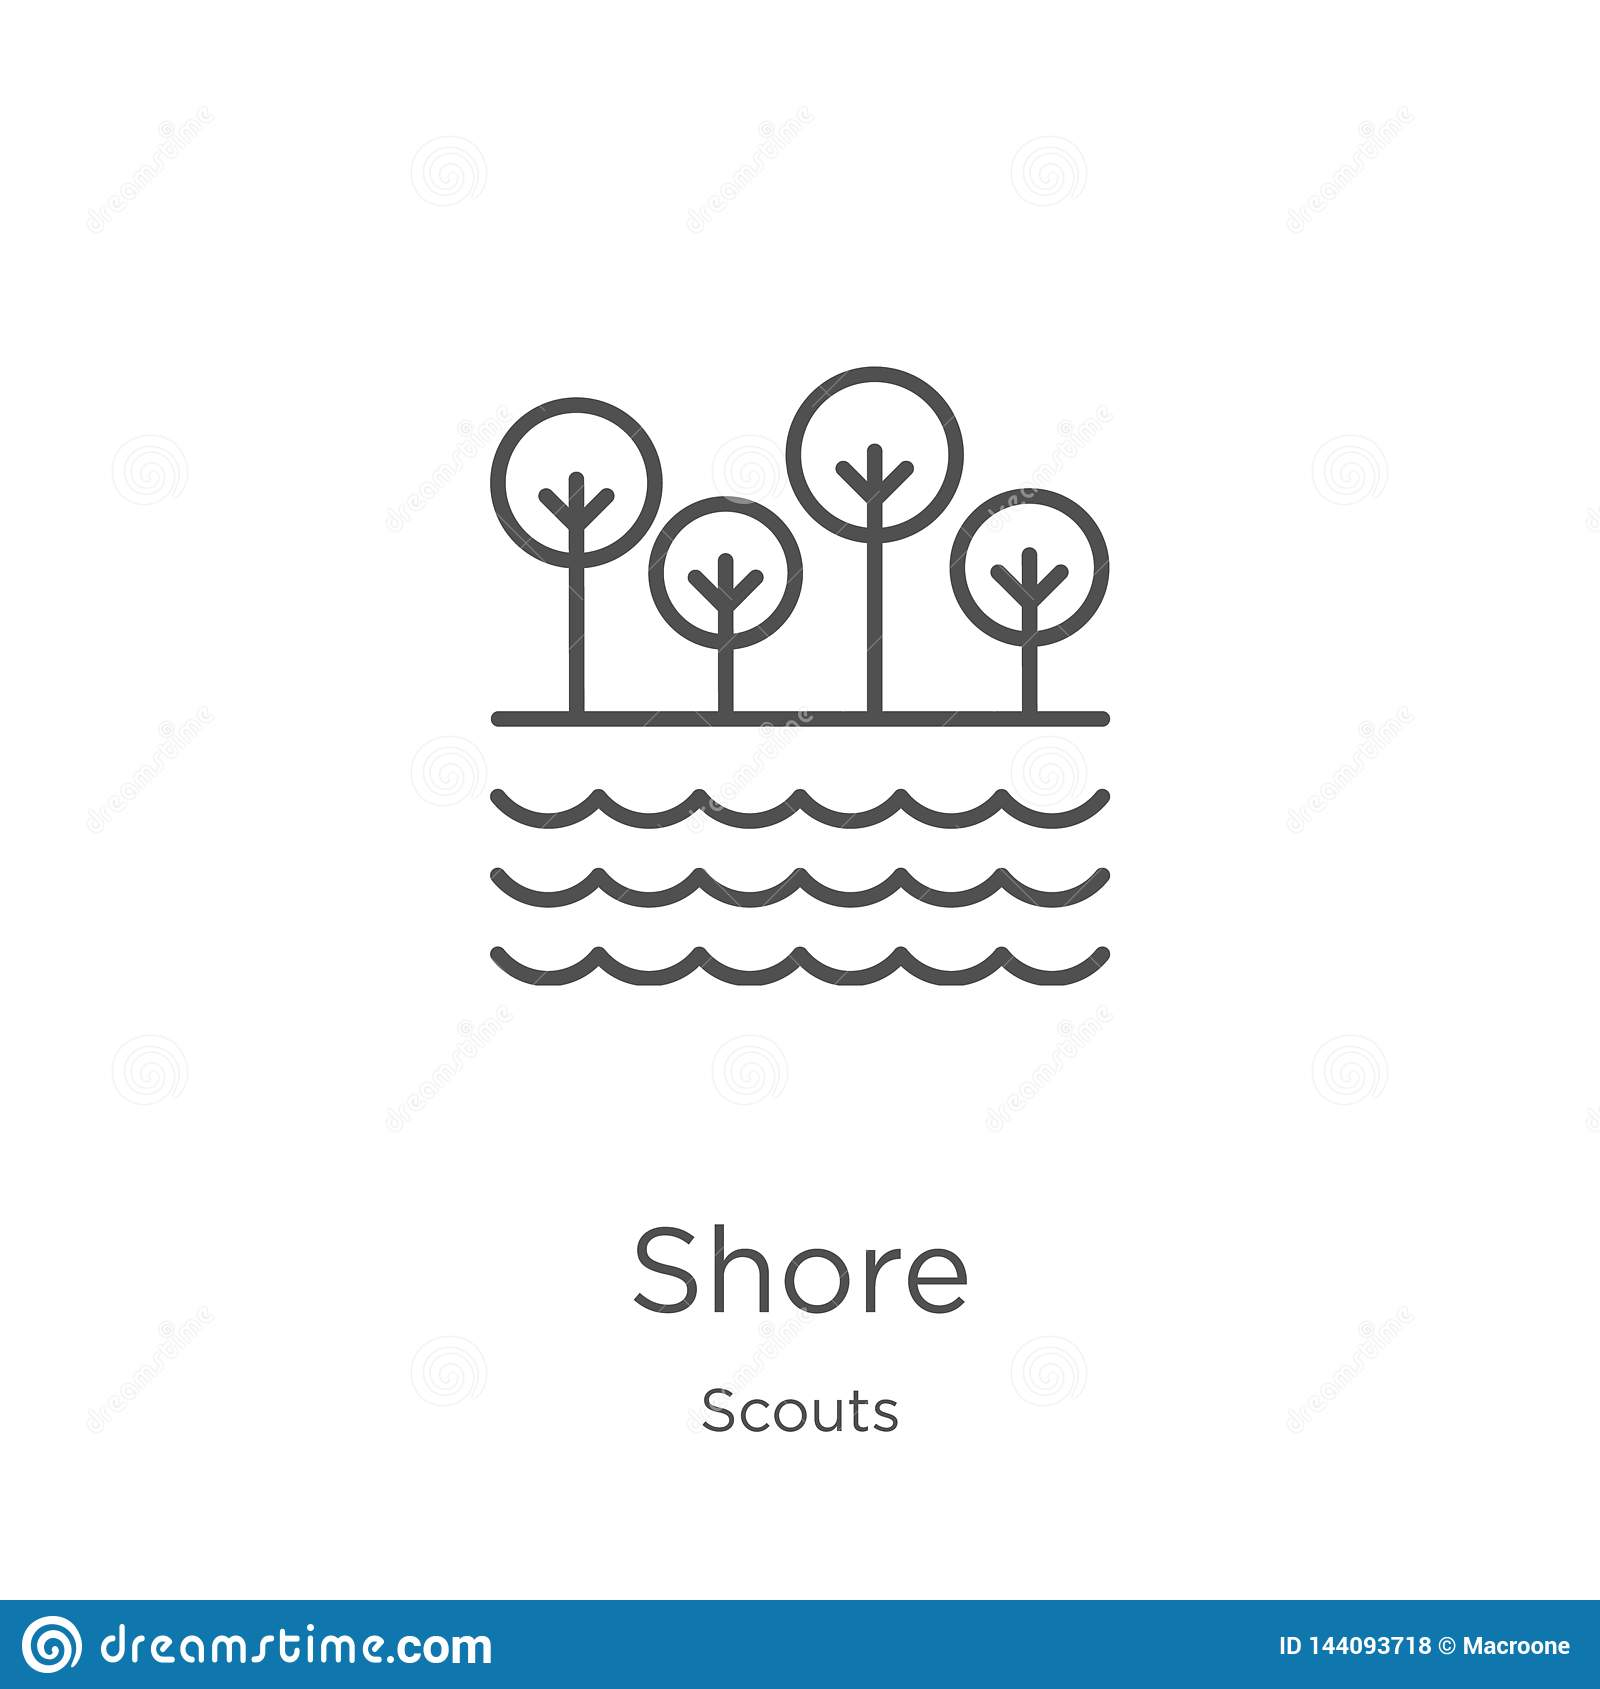 shore icon vector from scouts collection. Thin line shore outline icon vector illustration. Outline, thin line shore icon for